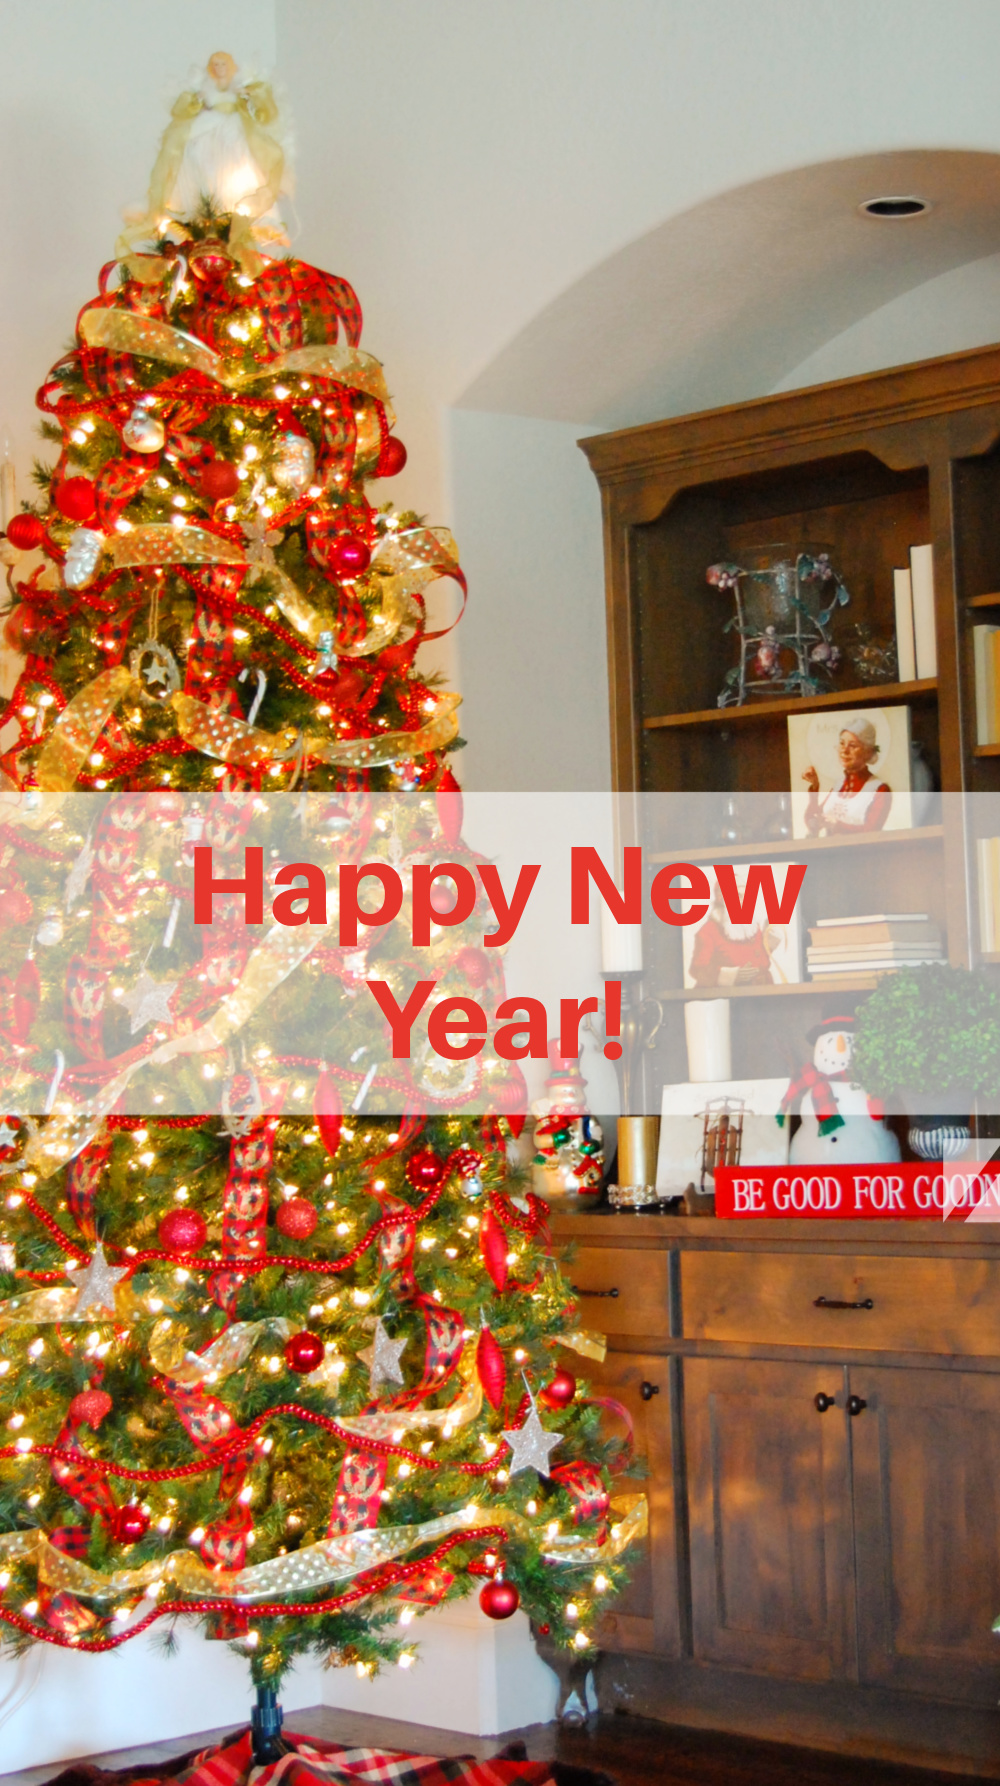 dining-new-years-holiday-texas-